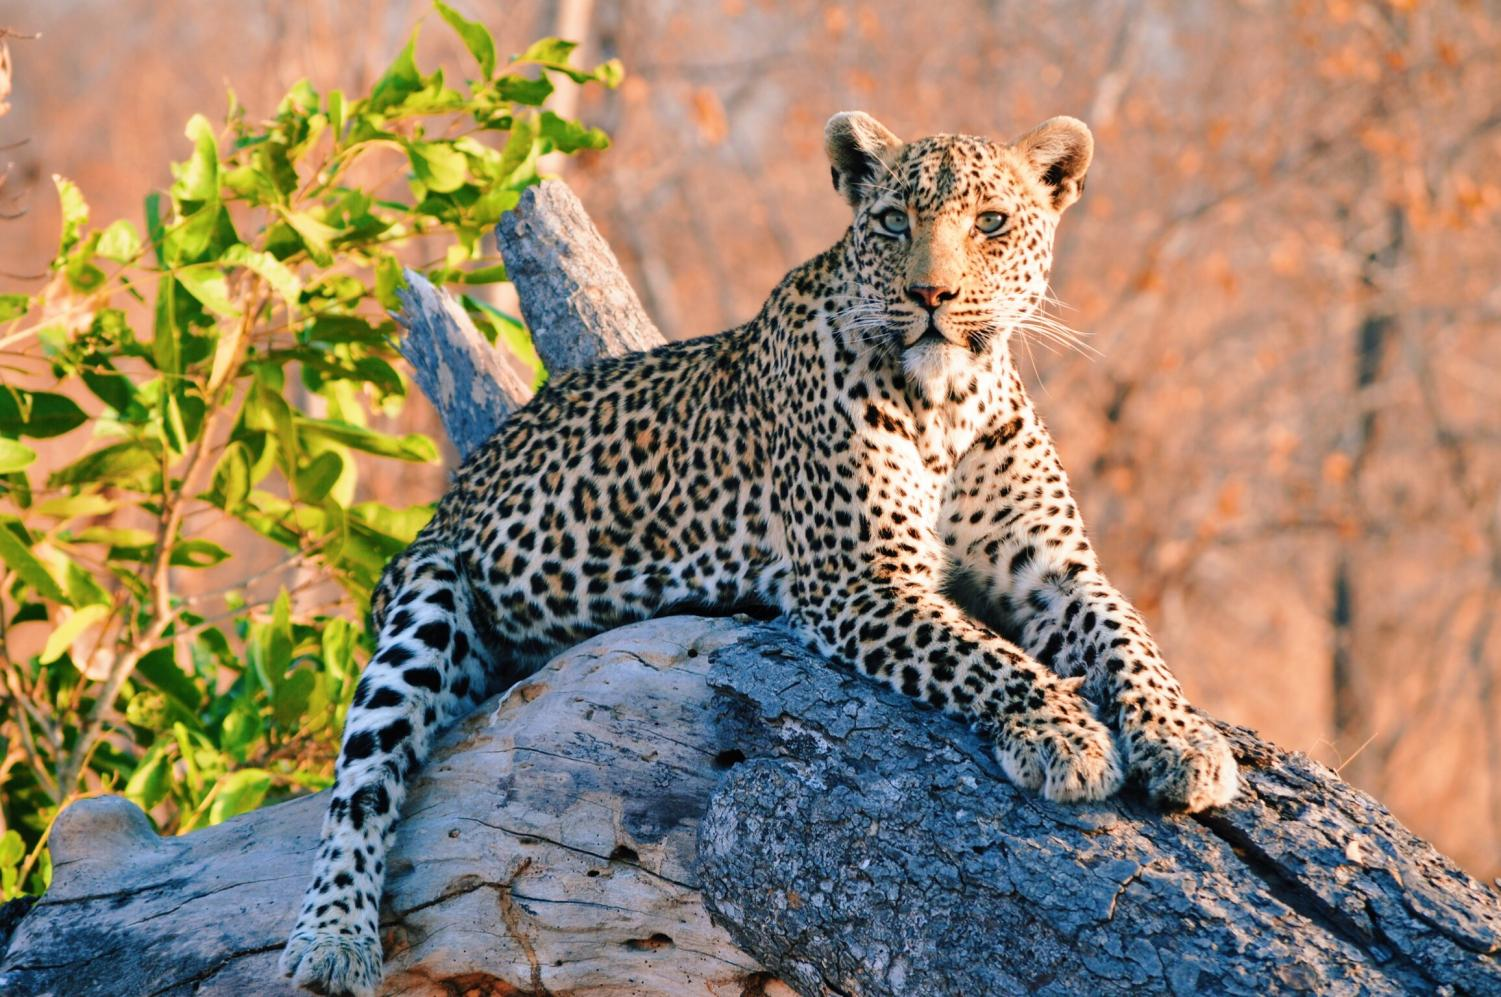 A+female+leopard+rests+on+a+fallen+tree+trunk+in+Kruger+National+Park%2C+South+Africa.+Online+Managing+Editor+Ally+Navarrete+visited+South+Africa+for+3+weeks+during+which+she+saw+all+of+the+Big+Five+animals+%28leopard%2C+lion%2C+Cape+buffalo%2C+elephant%2C+rhinoceros%29+among+other+sights+in+the+amazing+country.+